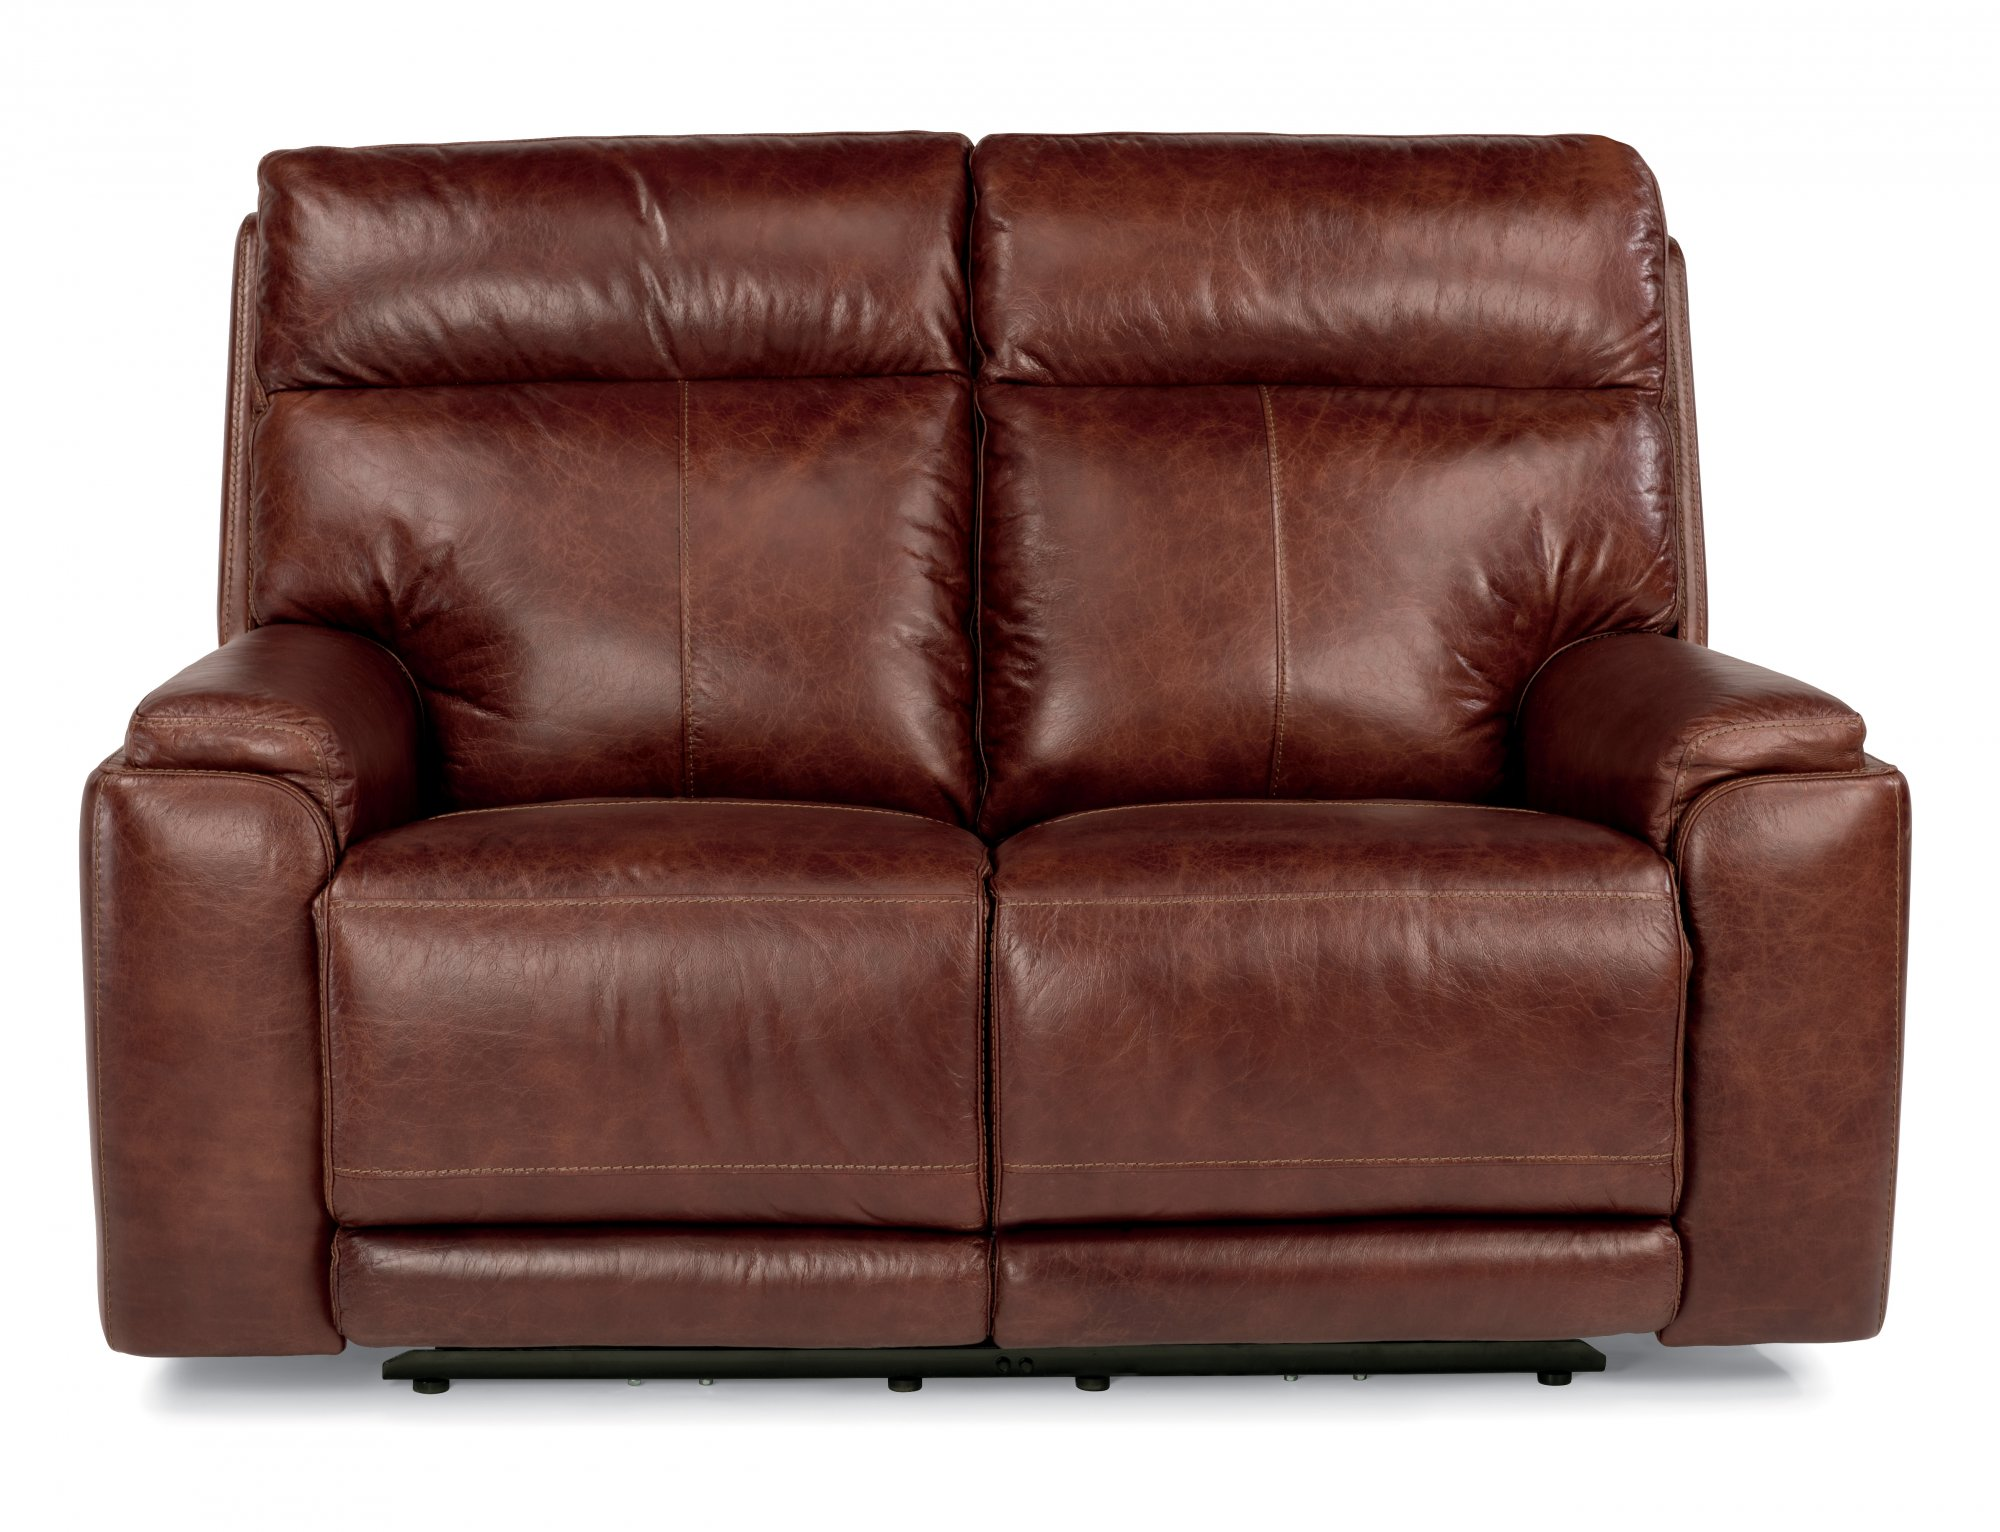 Home Decor leather loveseat recliner leather power reclining loveseat with power headrests pvoktyr